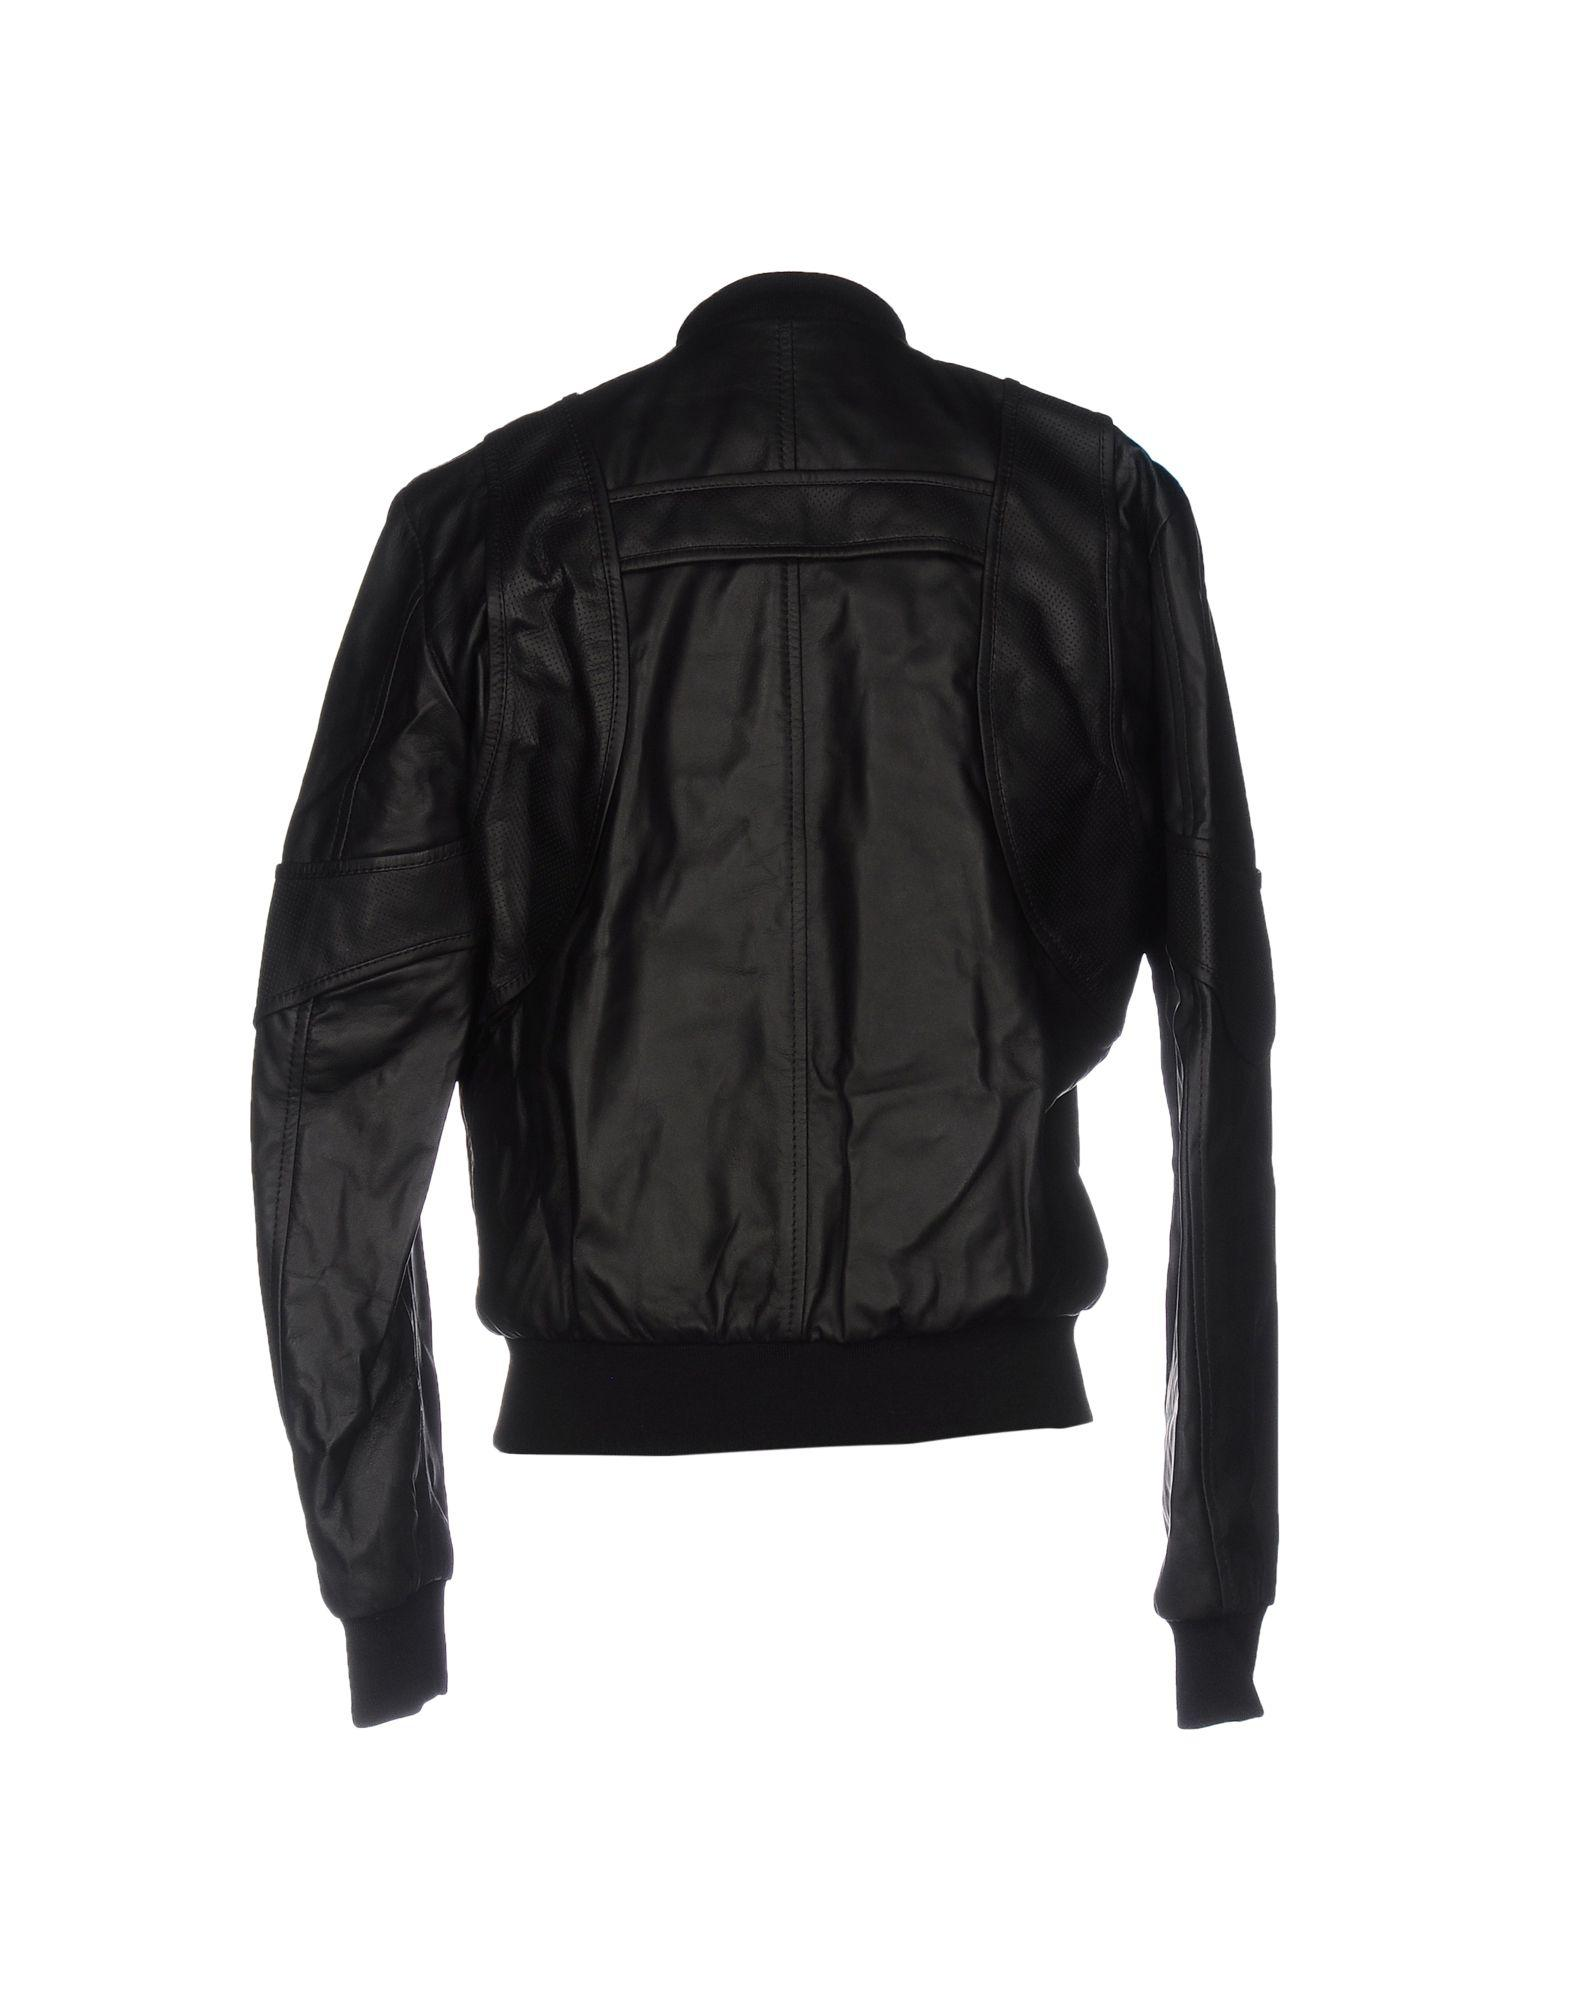 Marcelo Burlon Leather Jacket in Black for Men